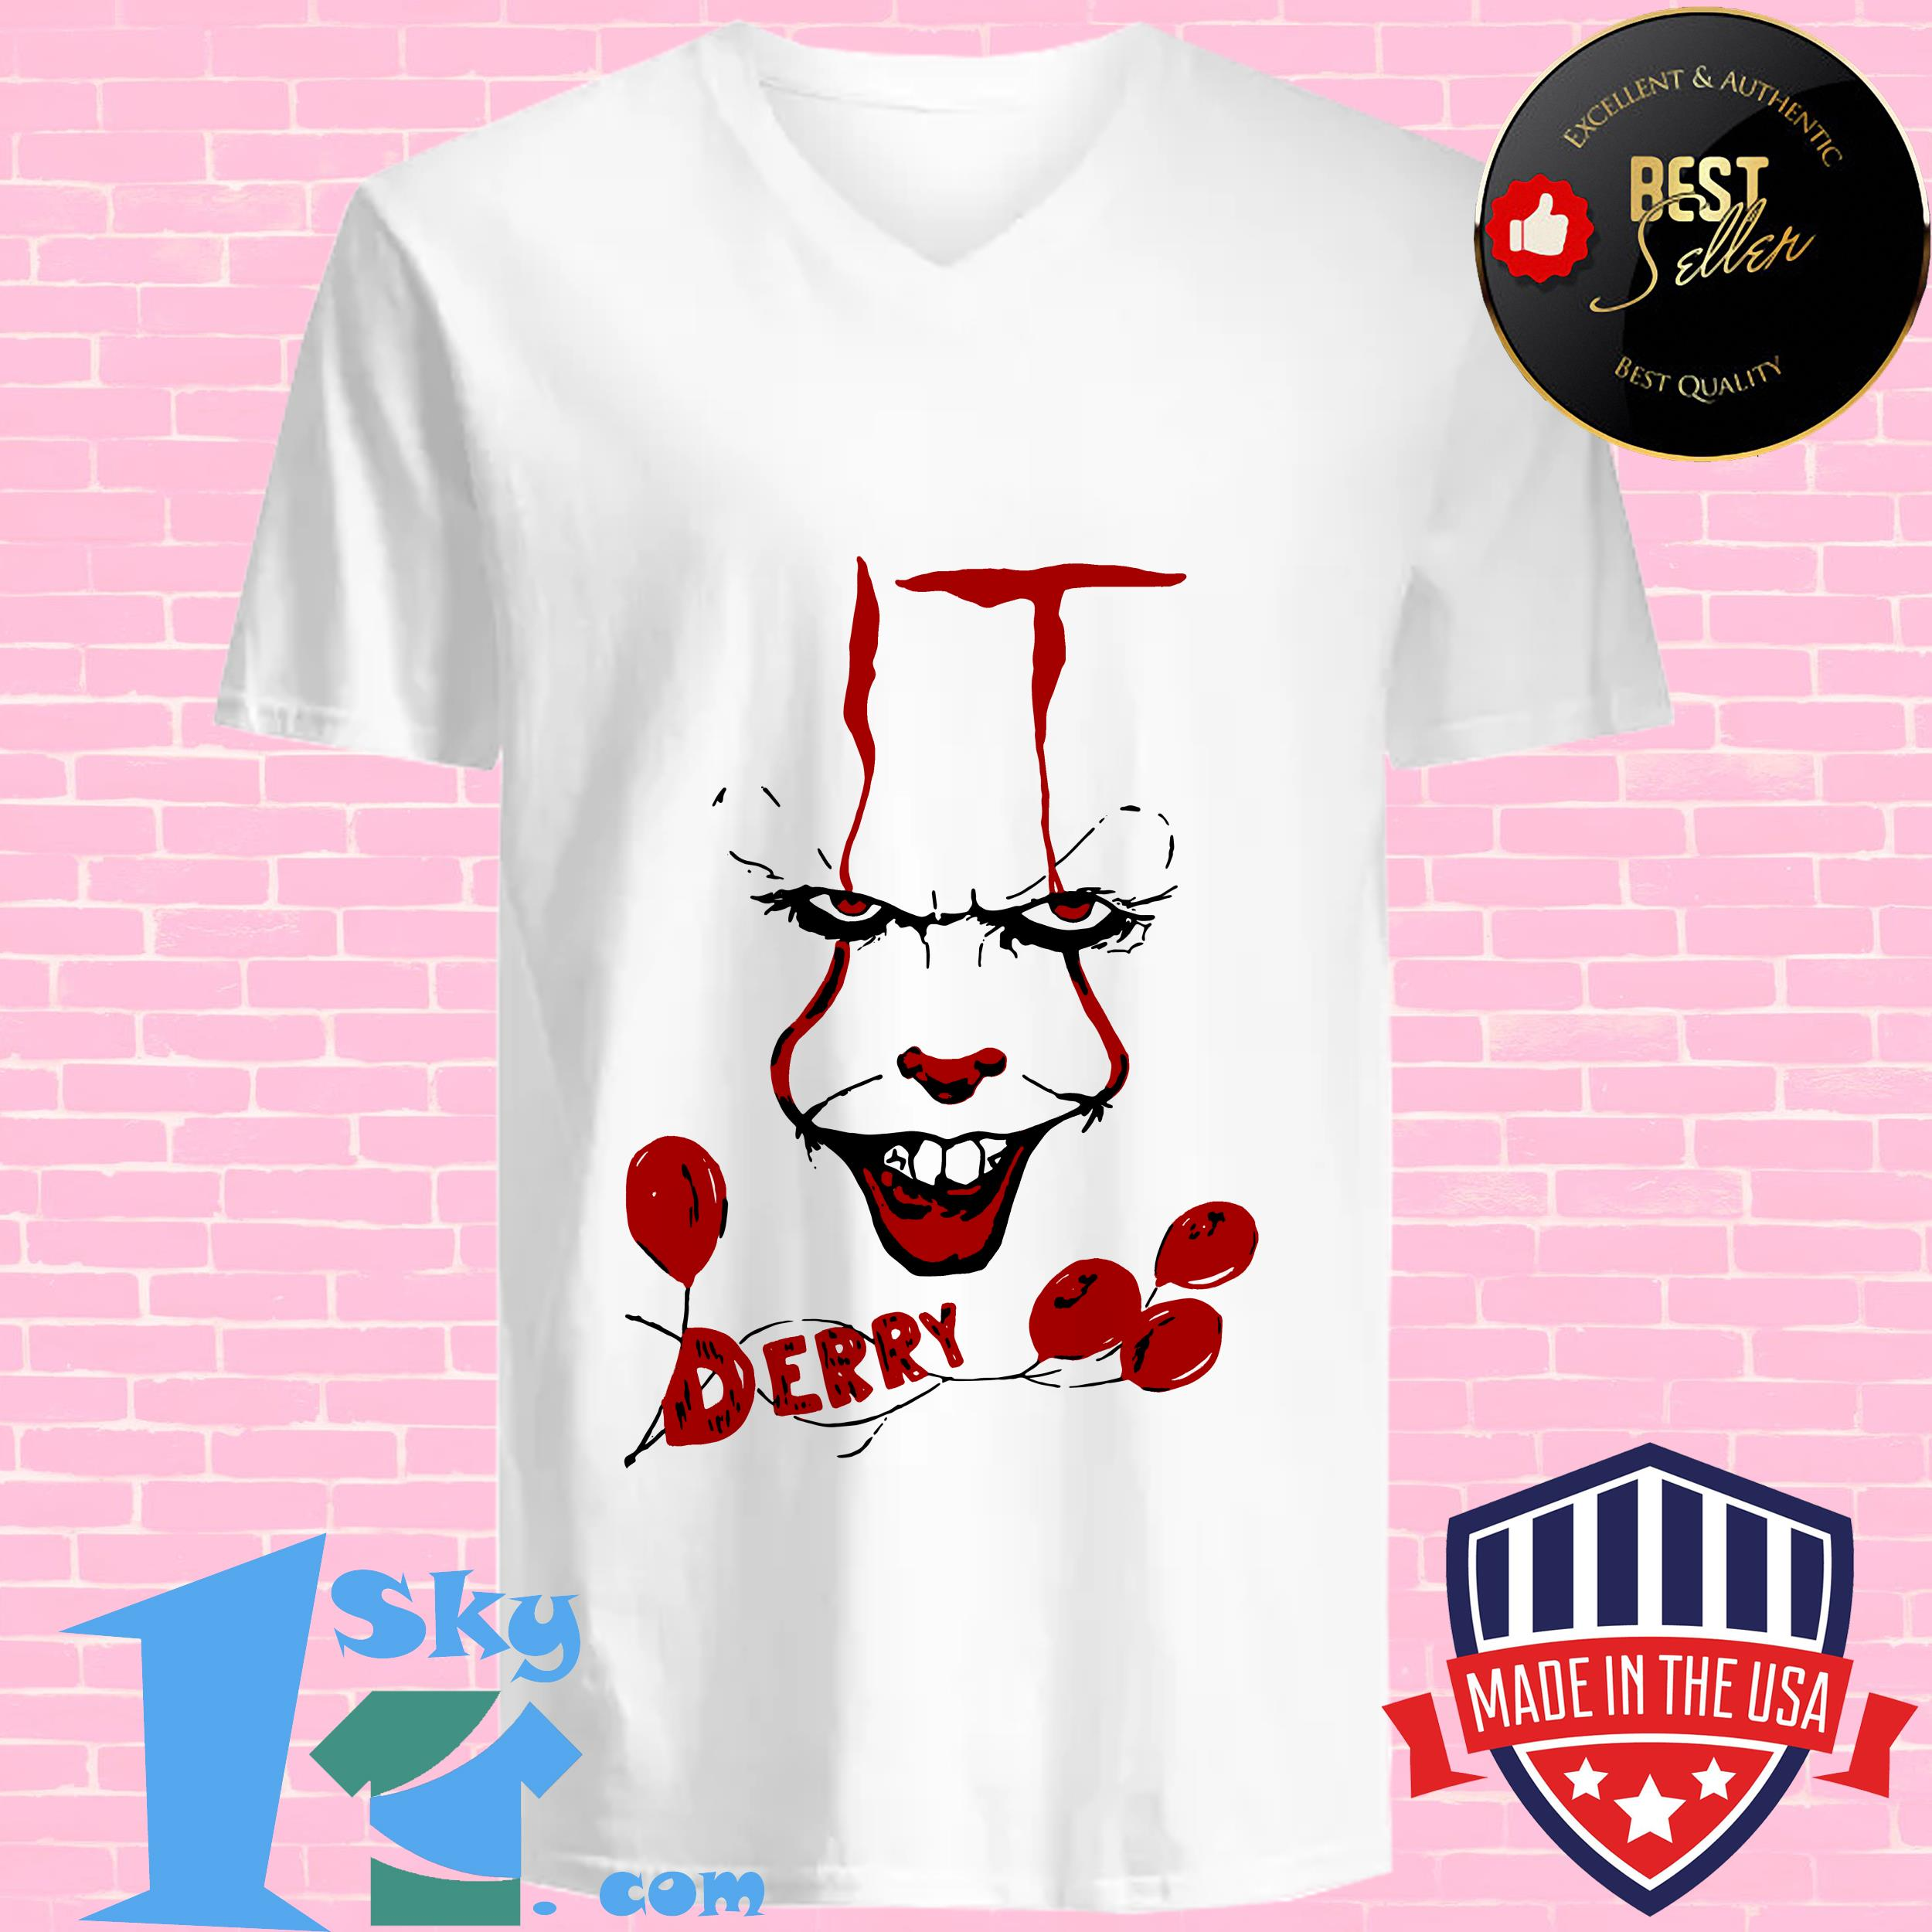 it pennywise killer clown chud stephen king derry maine v neck - IT Pennywise Killer Clown Chud Stephen King Derry Maine shirt